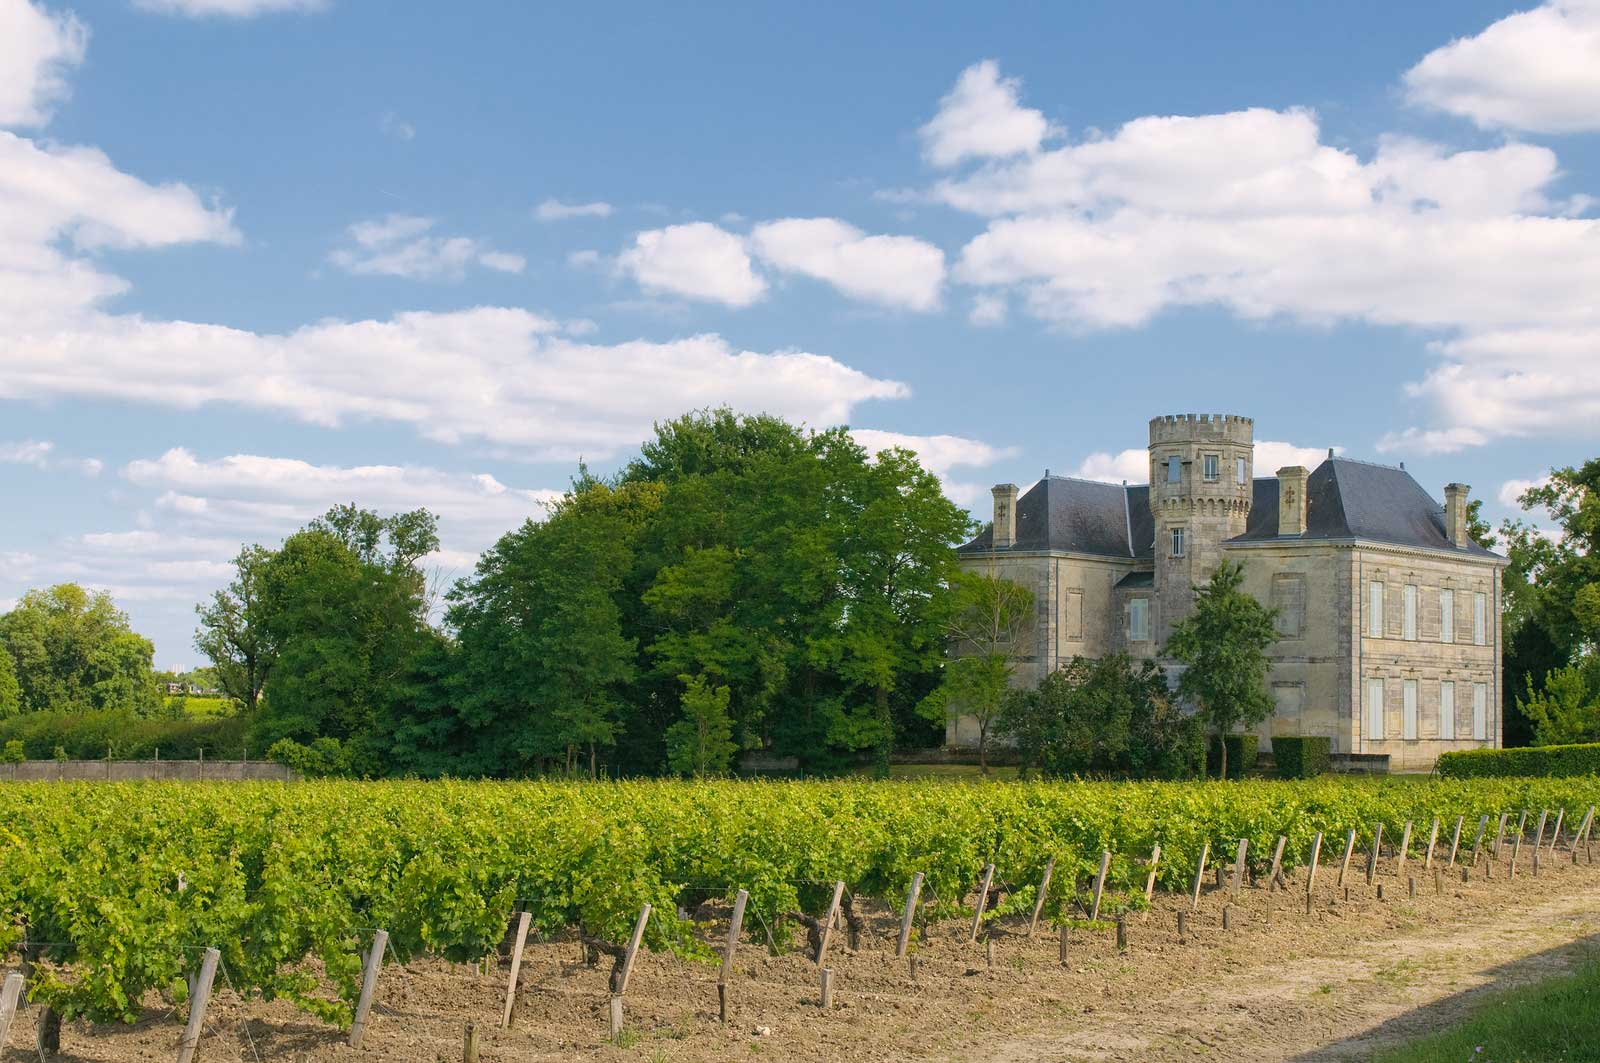 The seeds of the New World outlook on wine can be seen in Bordeaux's estates, such as this one in Margaux